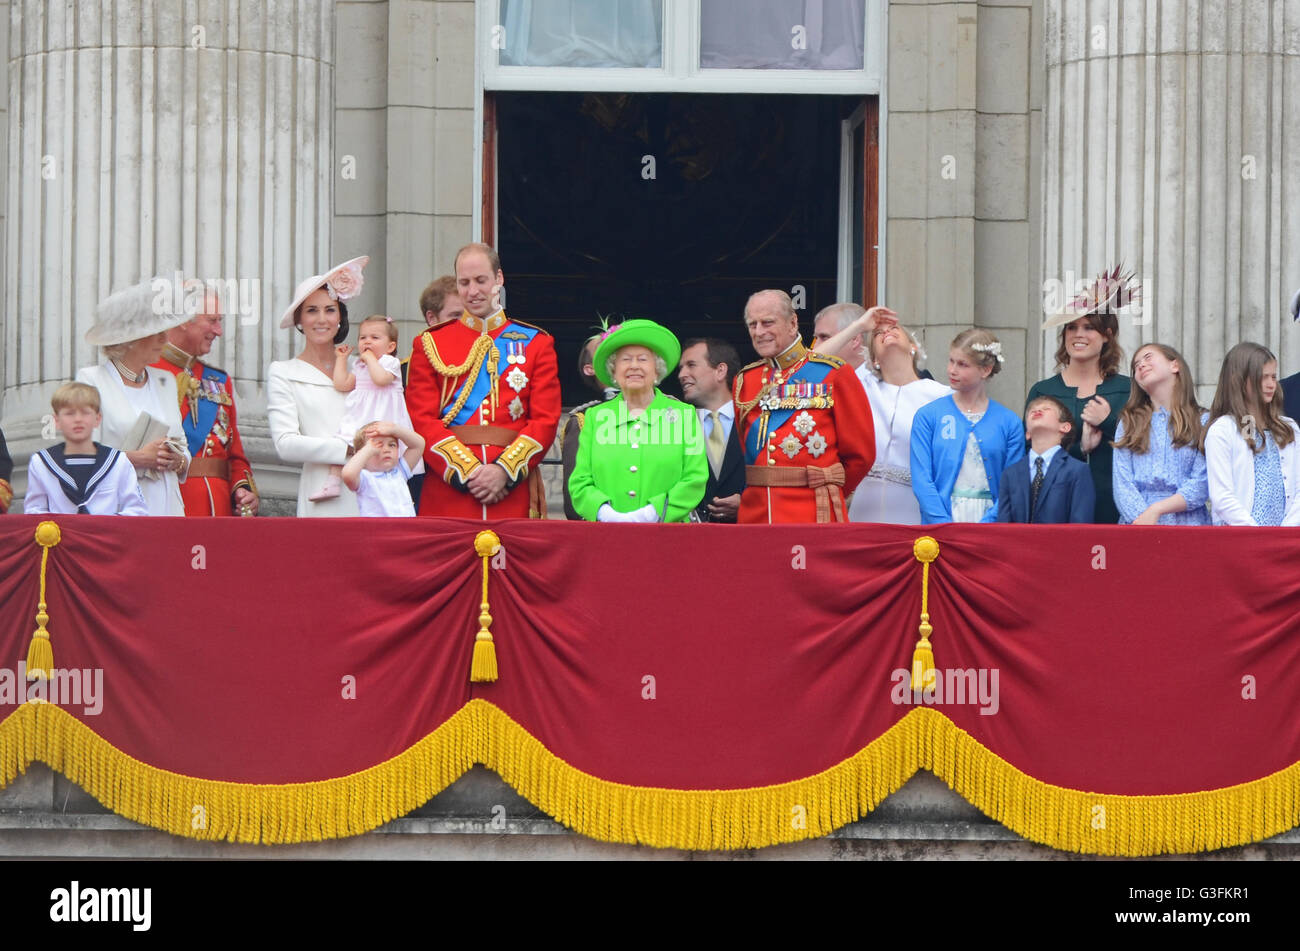 royal-family-viewing-the-queens-birthday-flypast-from-the-balcony-G3FKR1.jpg